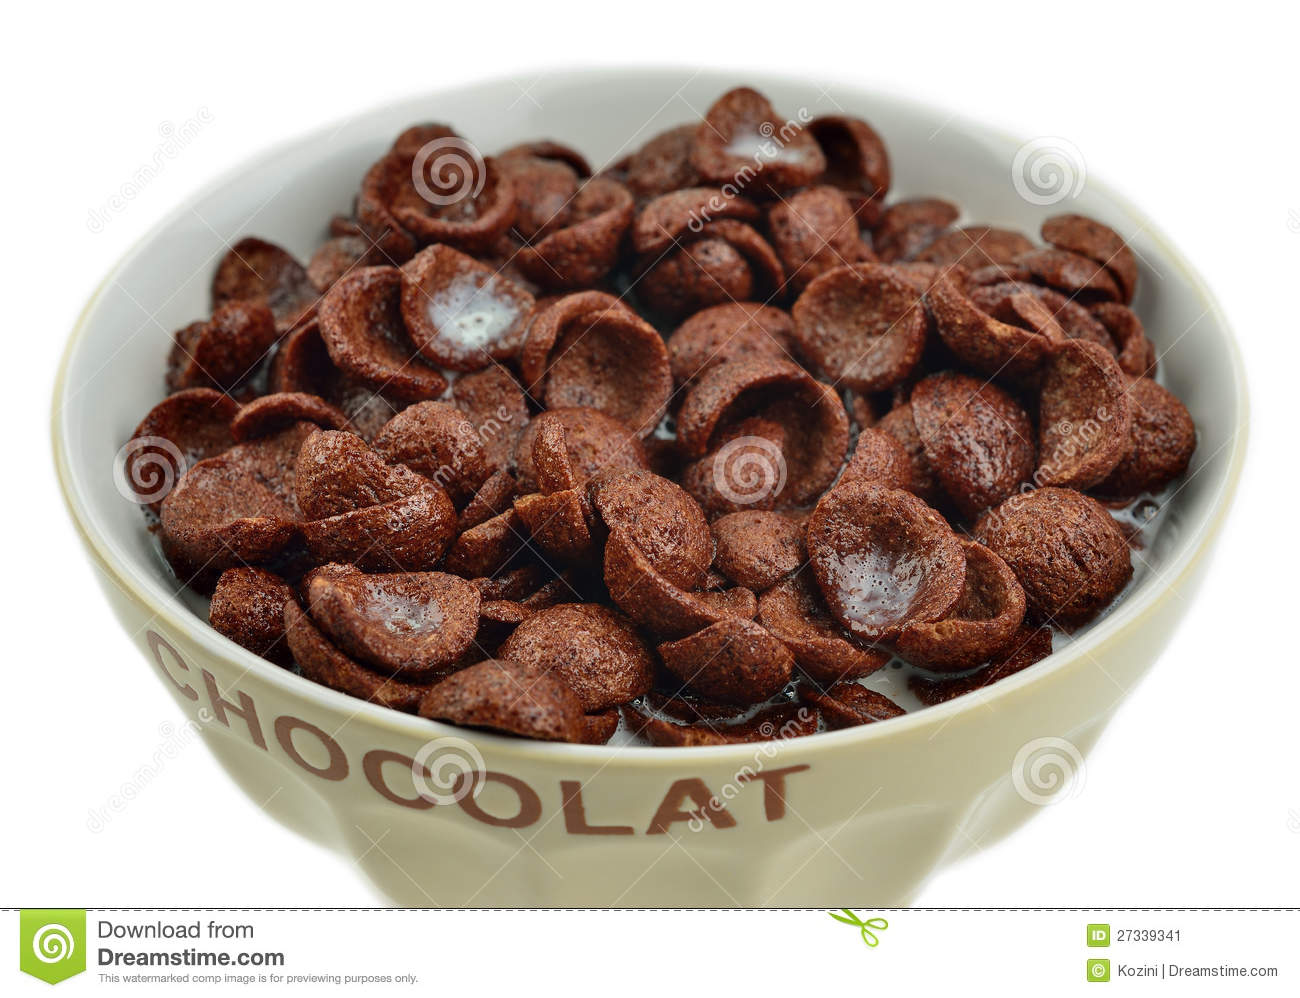 U555u | Images: Bowl Of Chocolate Cereal With Milk